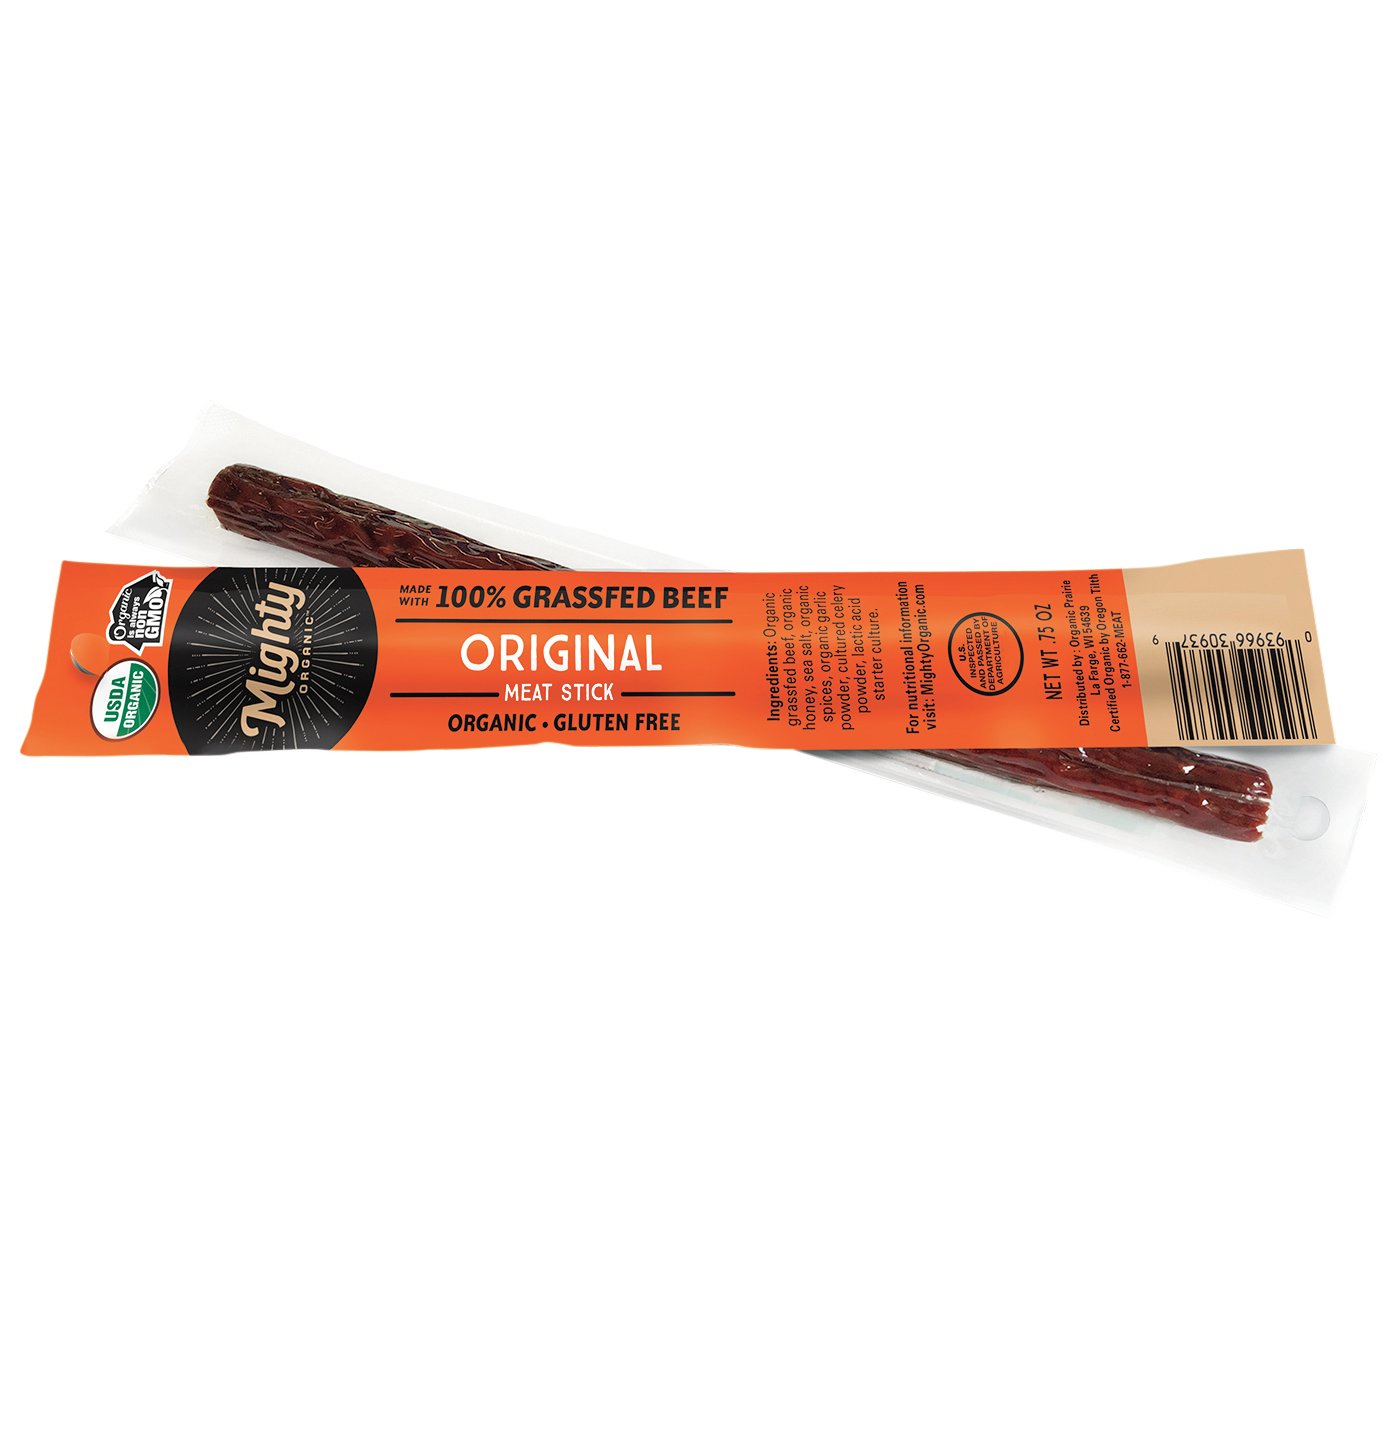 Mighty Organic Beef Stick Original